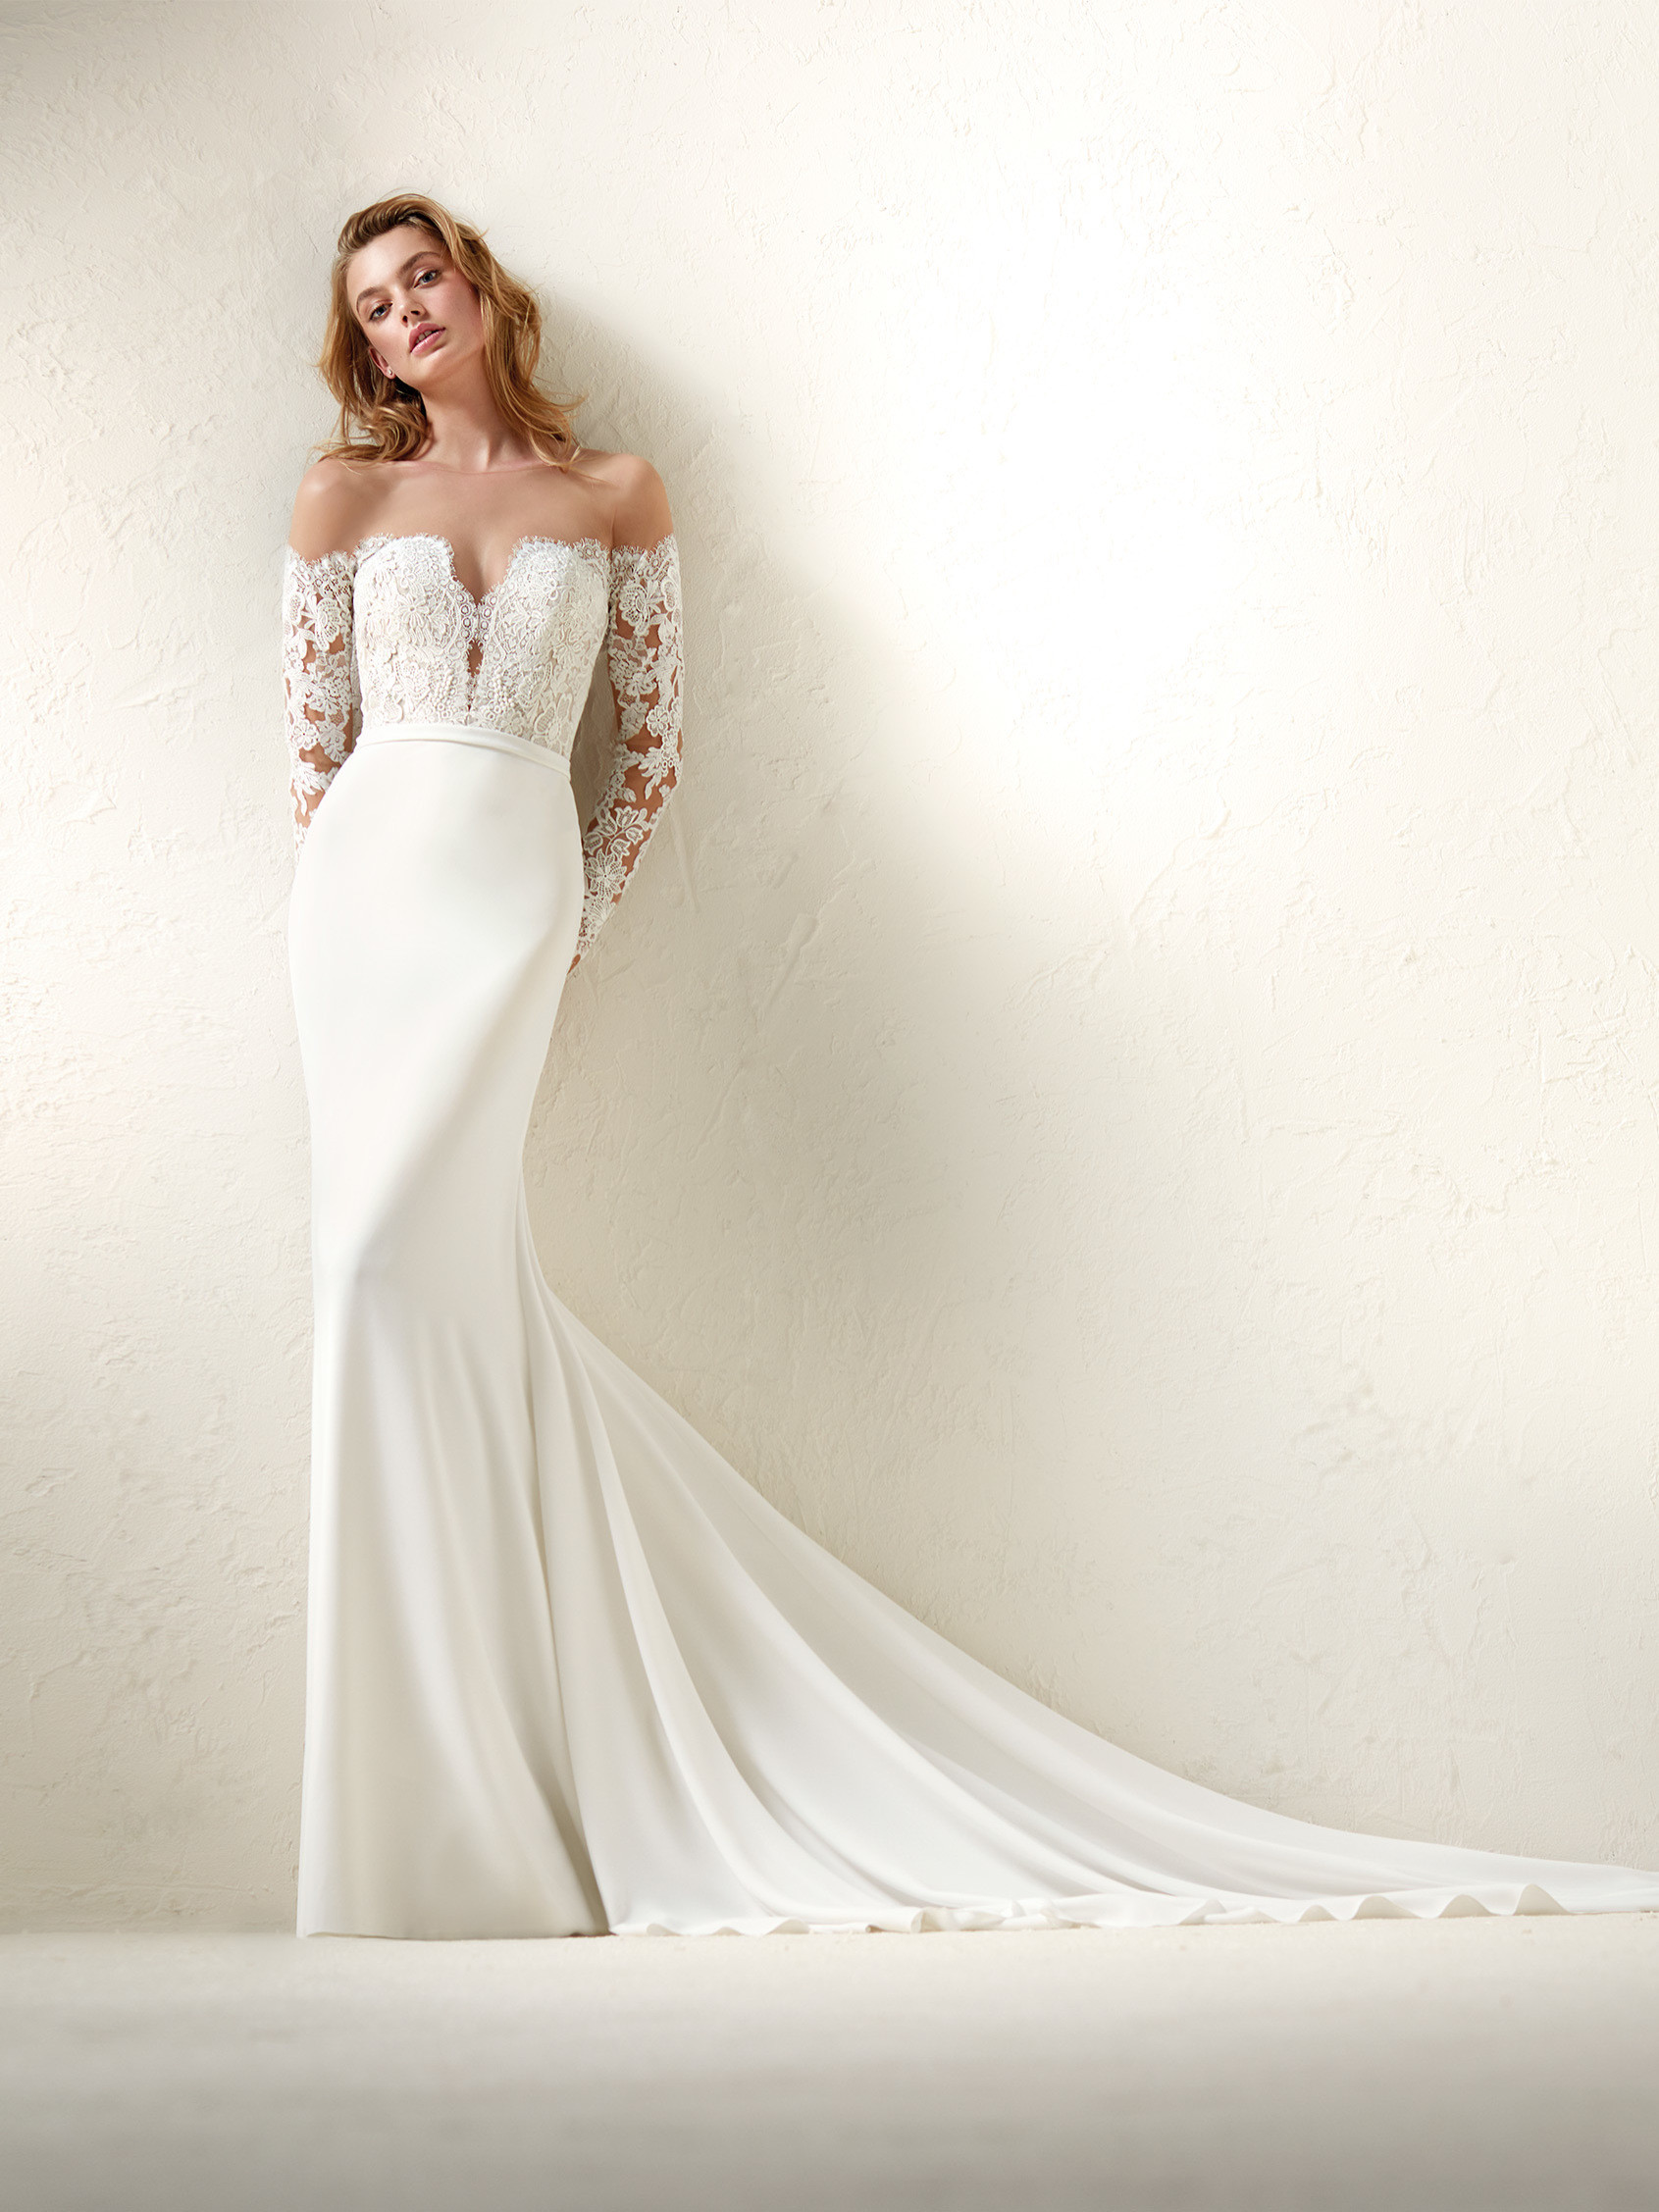 This Beautiful Crew Off The Shoulder One Of A Kind Wedding Gown Has Recently Graced Us With Its Presence At Lulus Bridal And Is Waiting For You To E: Lulus Beaded Bodice Wedding Dress At Websimilar.org